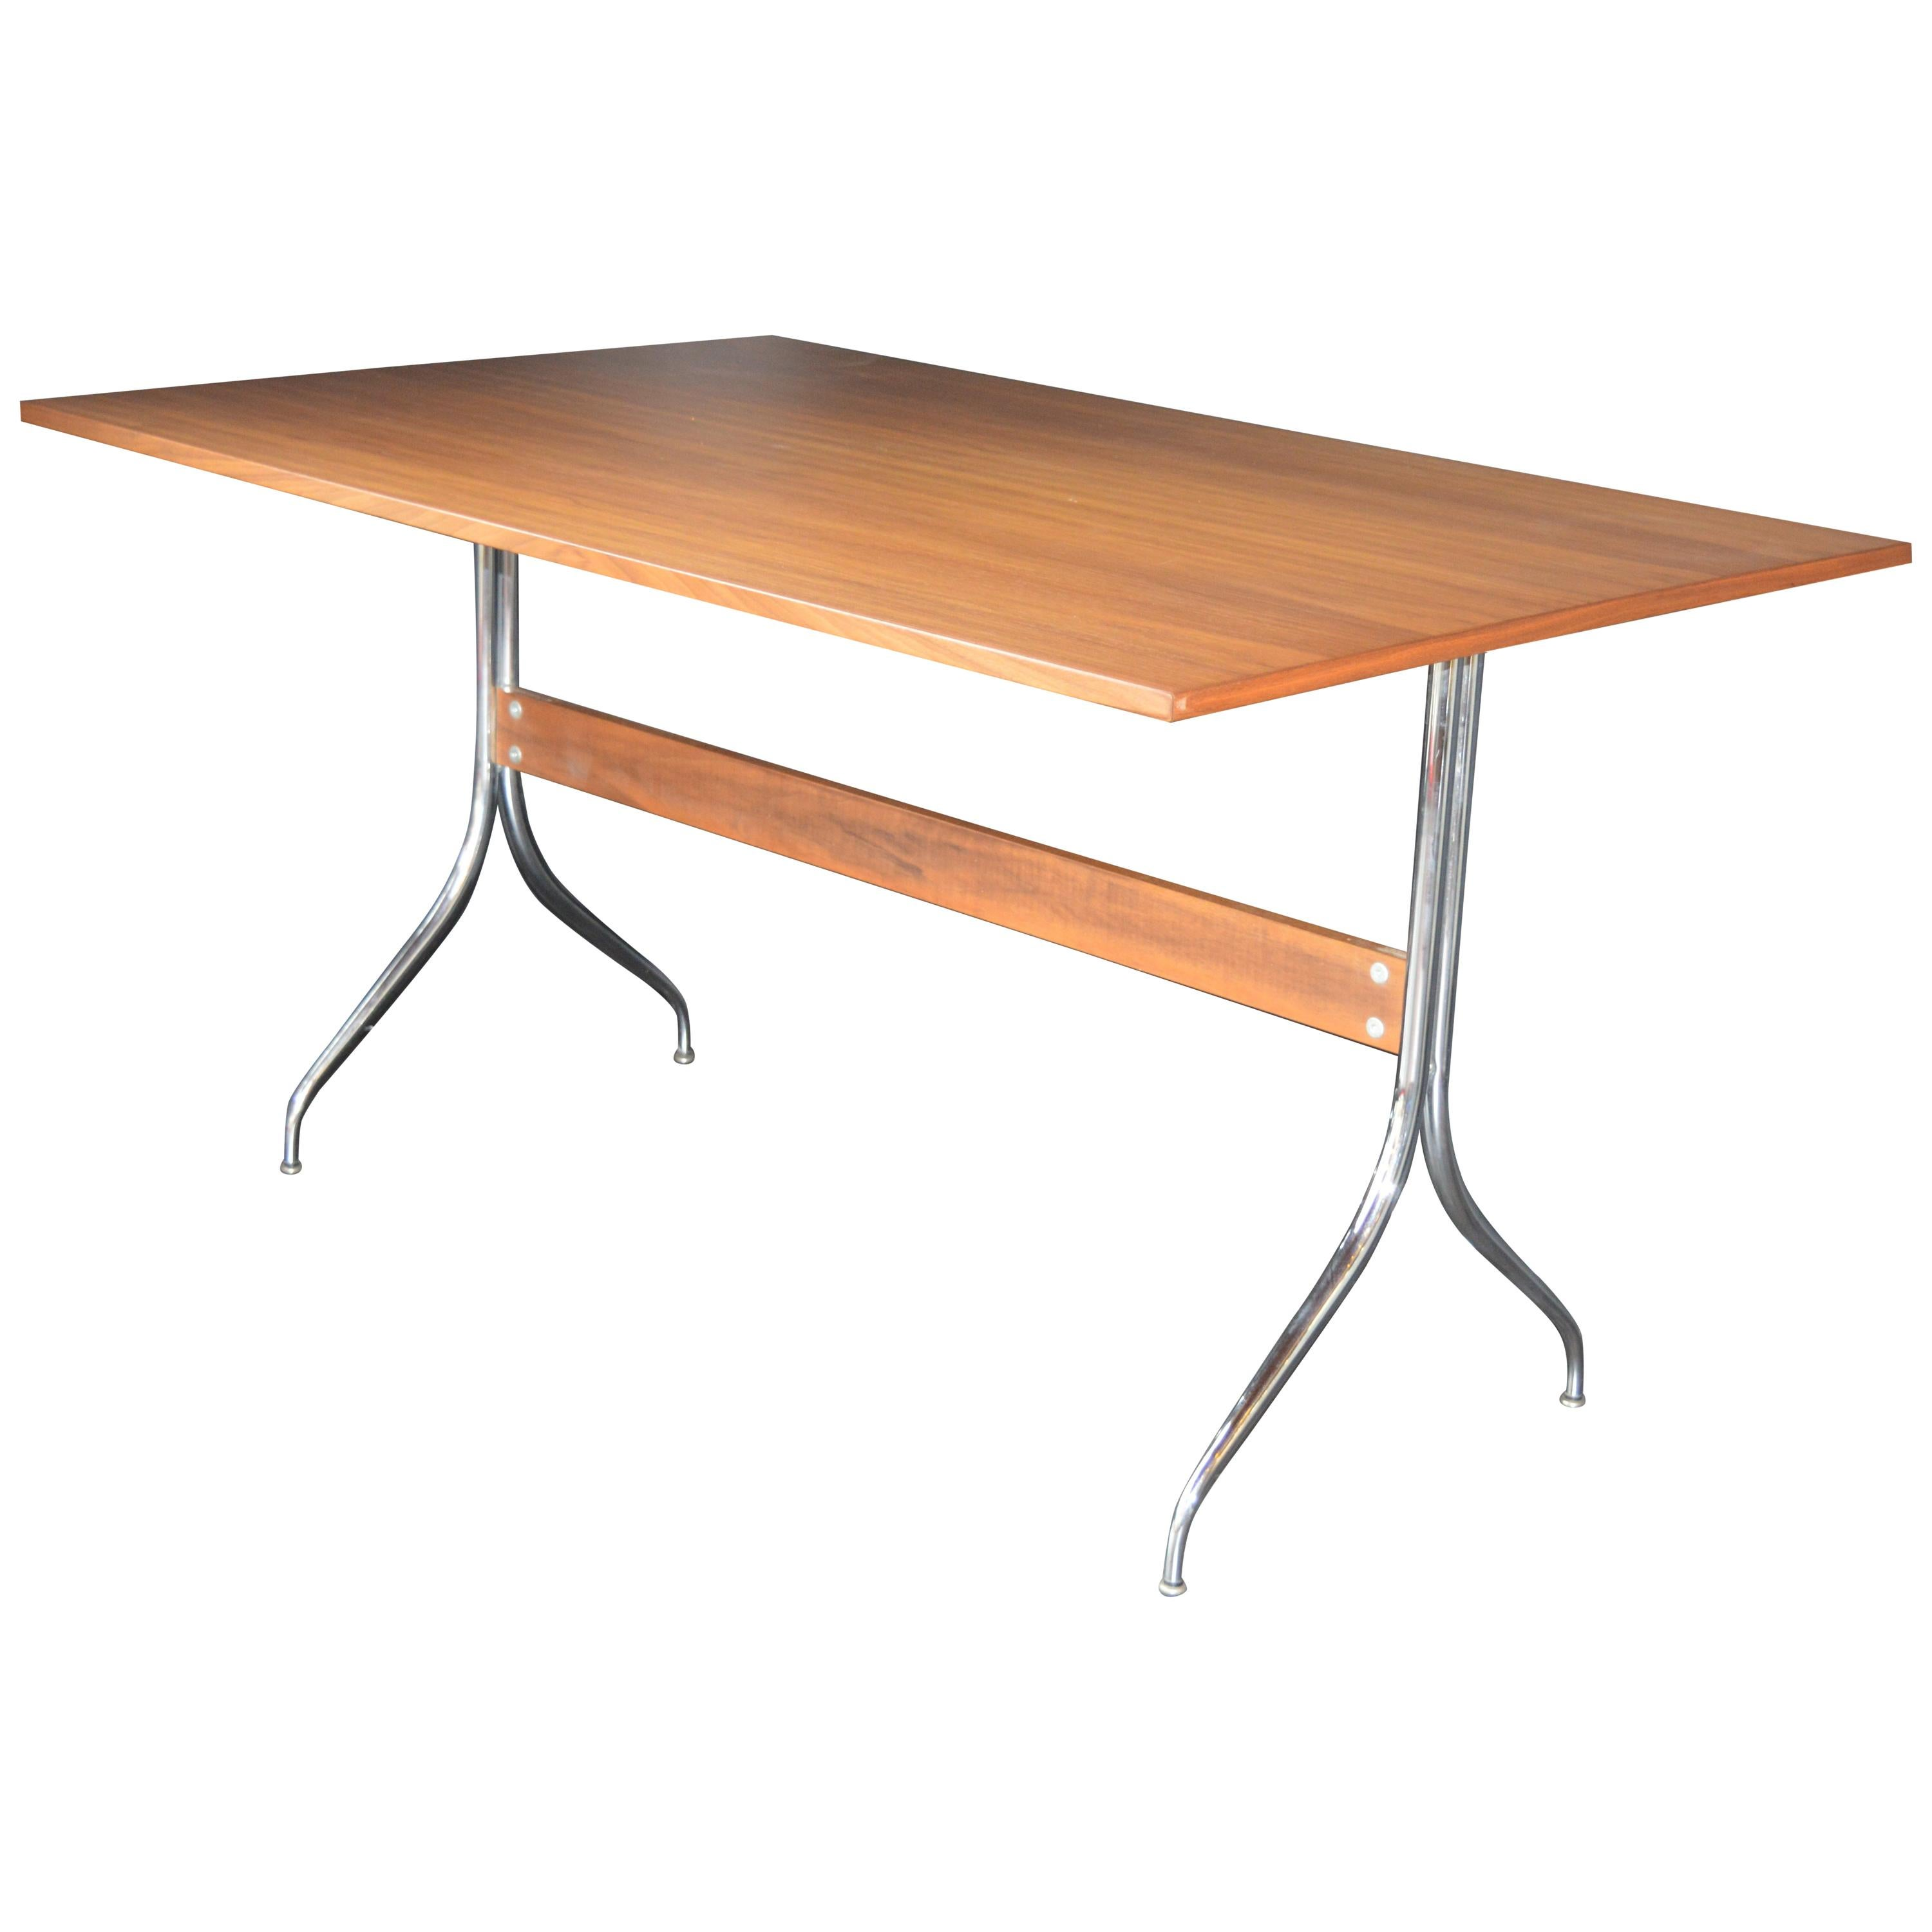 Swag Leg Desk and Tables